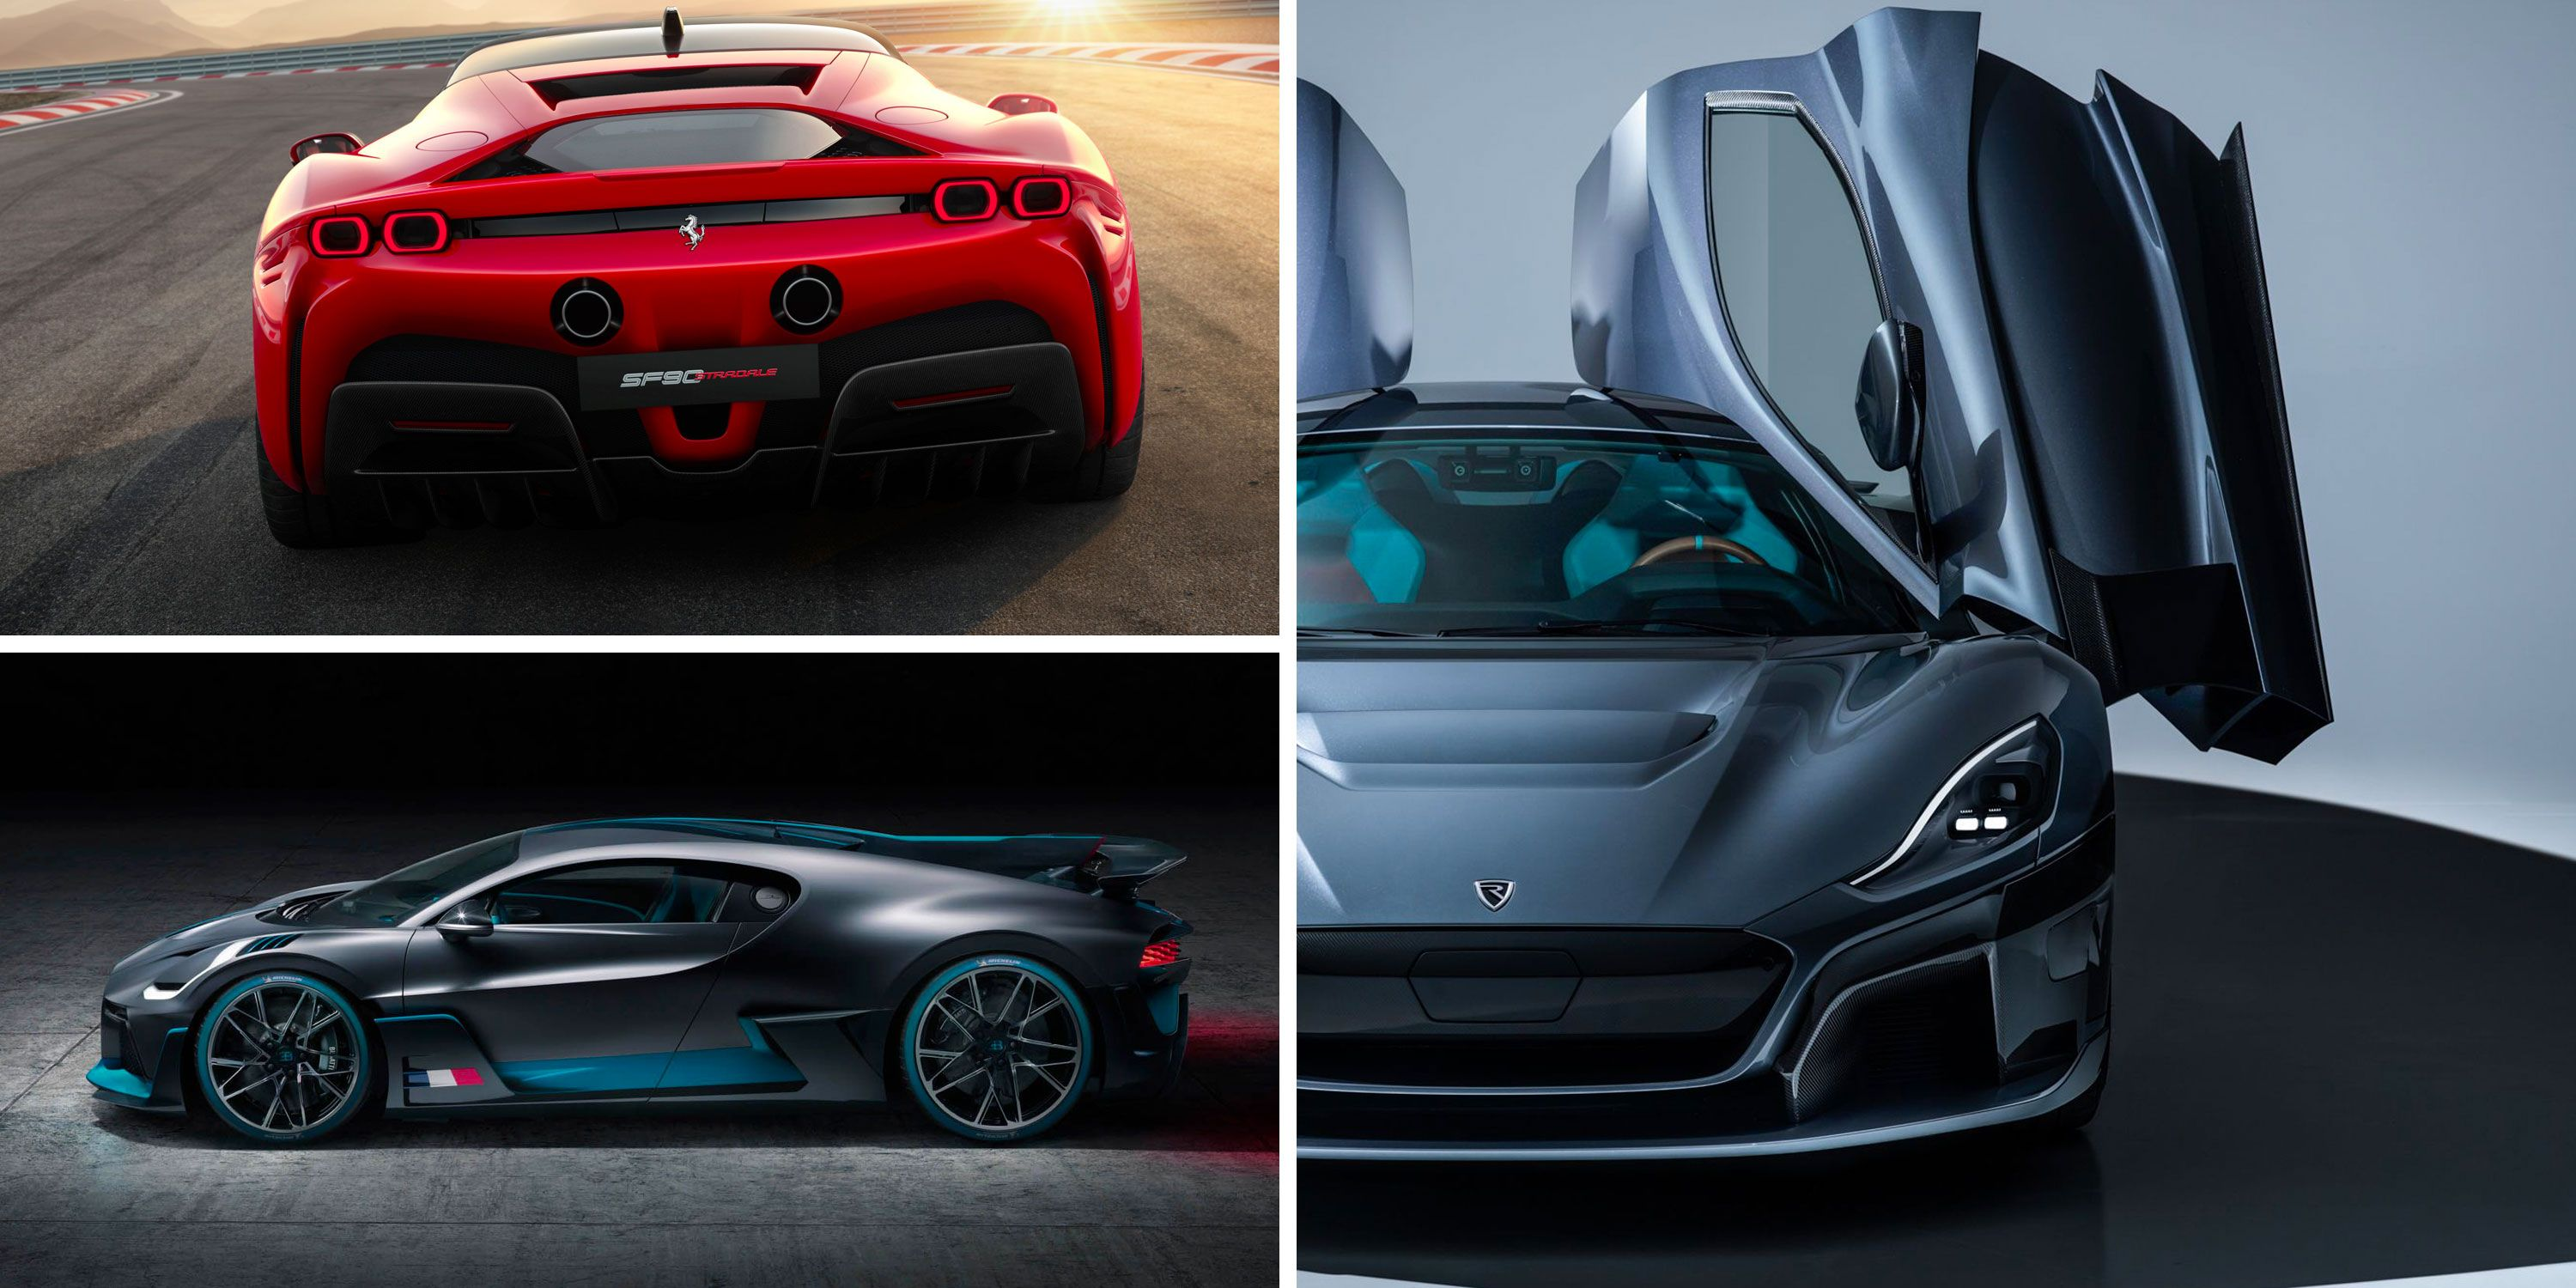 10 Insanely Powerful Hypercars To Look For In 2019 And Beyond